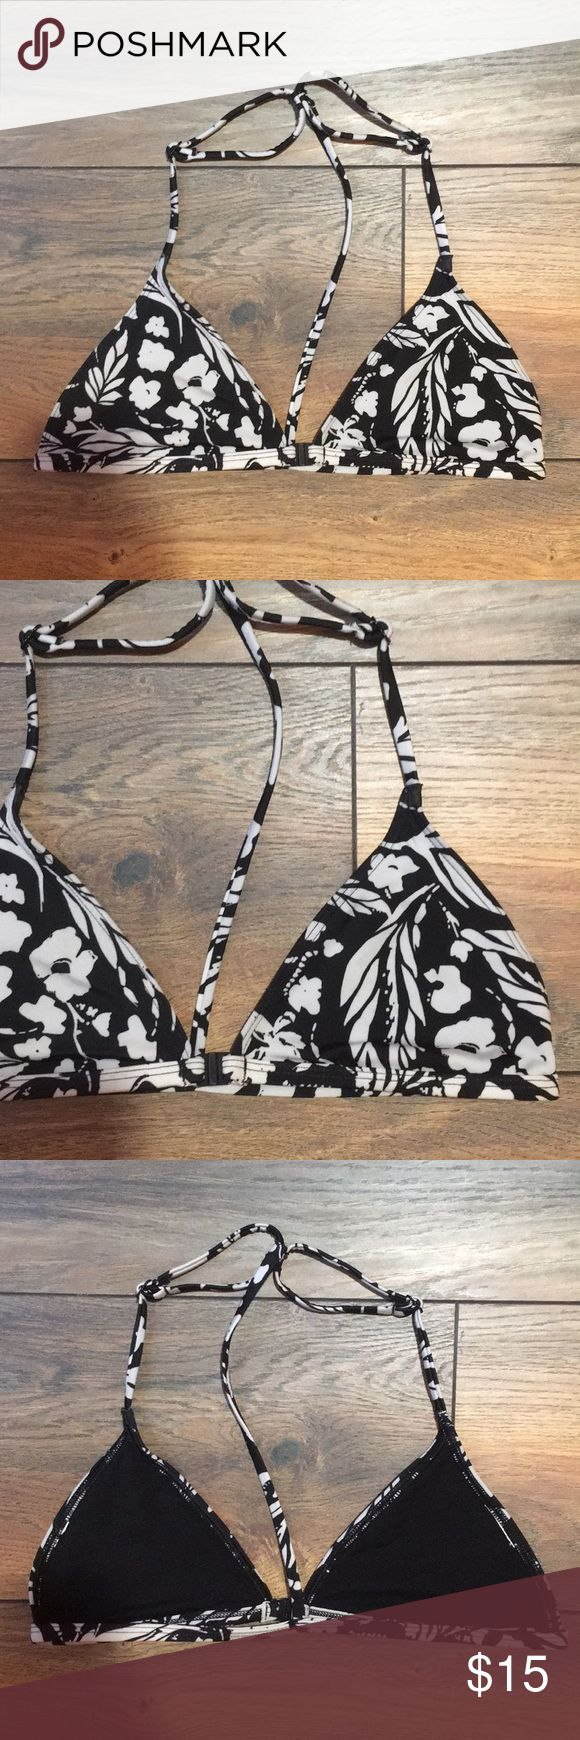 Urban Outfitters Out From Under Bikini Top, Small Out from under t-back bikini top from Urban Outfitters. Tag size has been cut out, but it's a size small. Light wear. Black and kind of an off white cream floral print. Matches the striped bottoms I have in my closet! Urban Outfitters Swim Bikinis